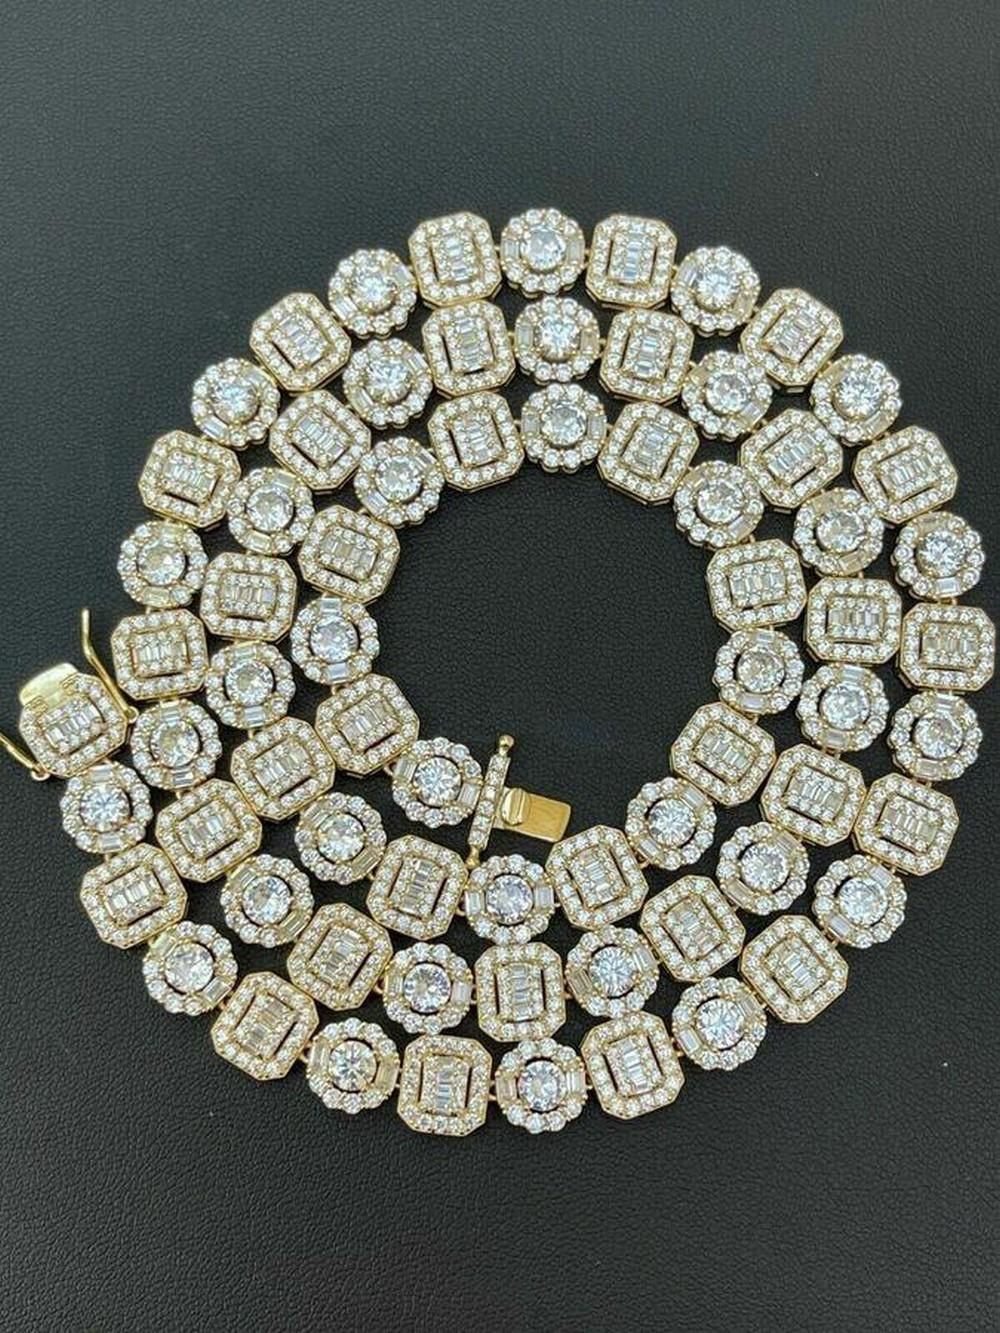 """20"""" Baguette Tennis Chain With 14K Gold Over Solid 925 Silver"""